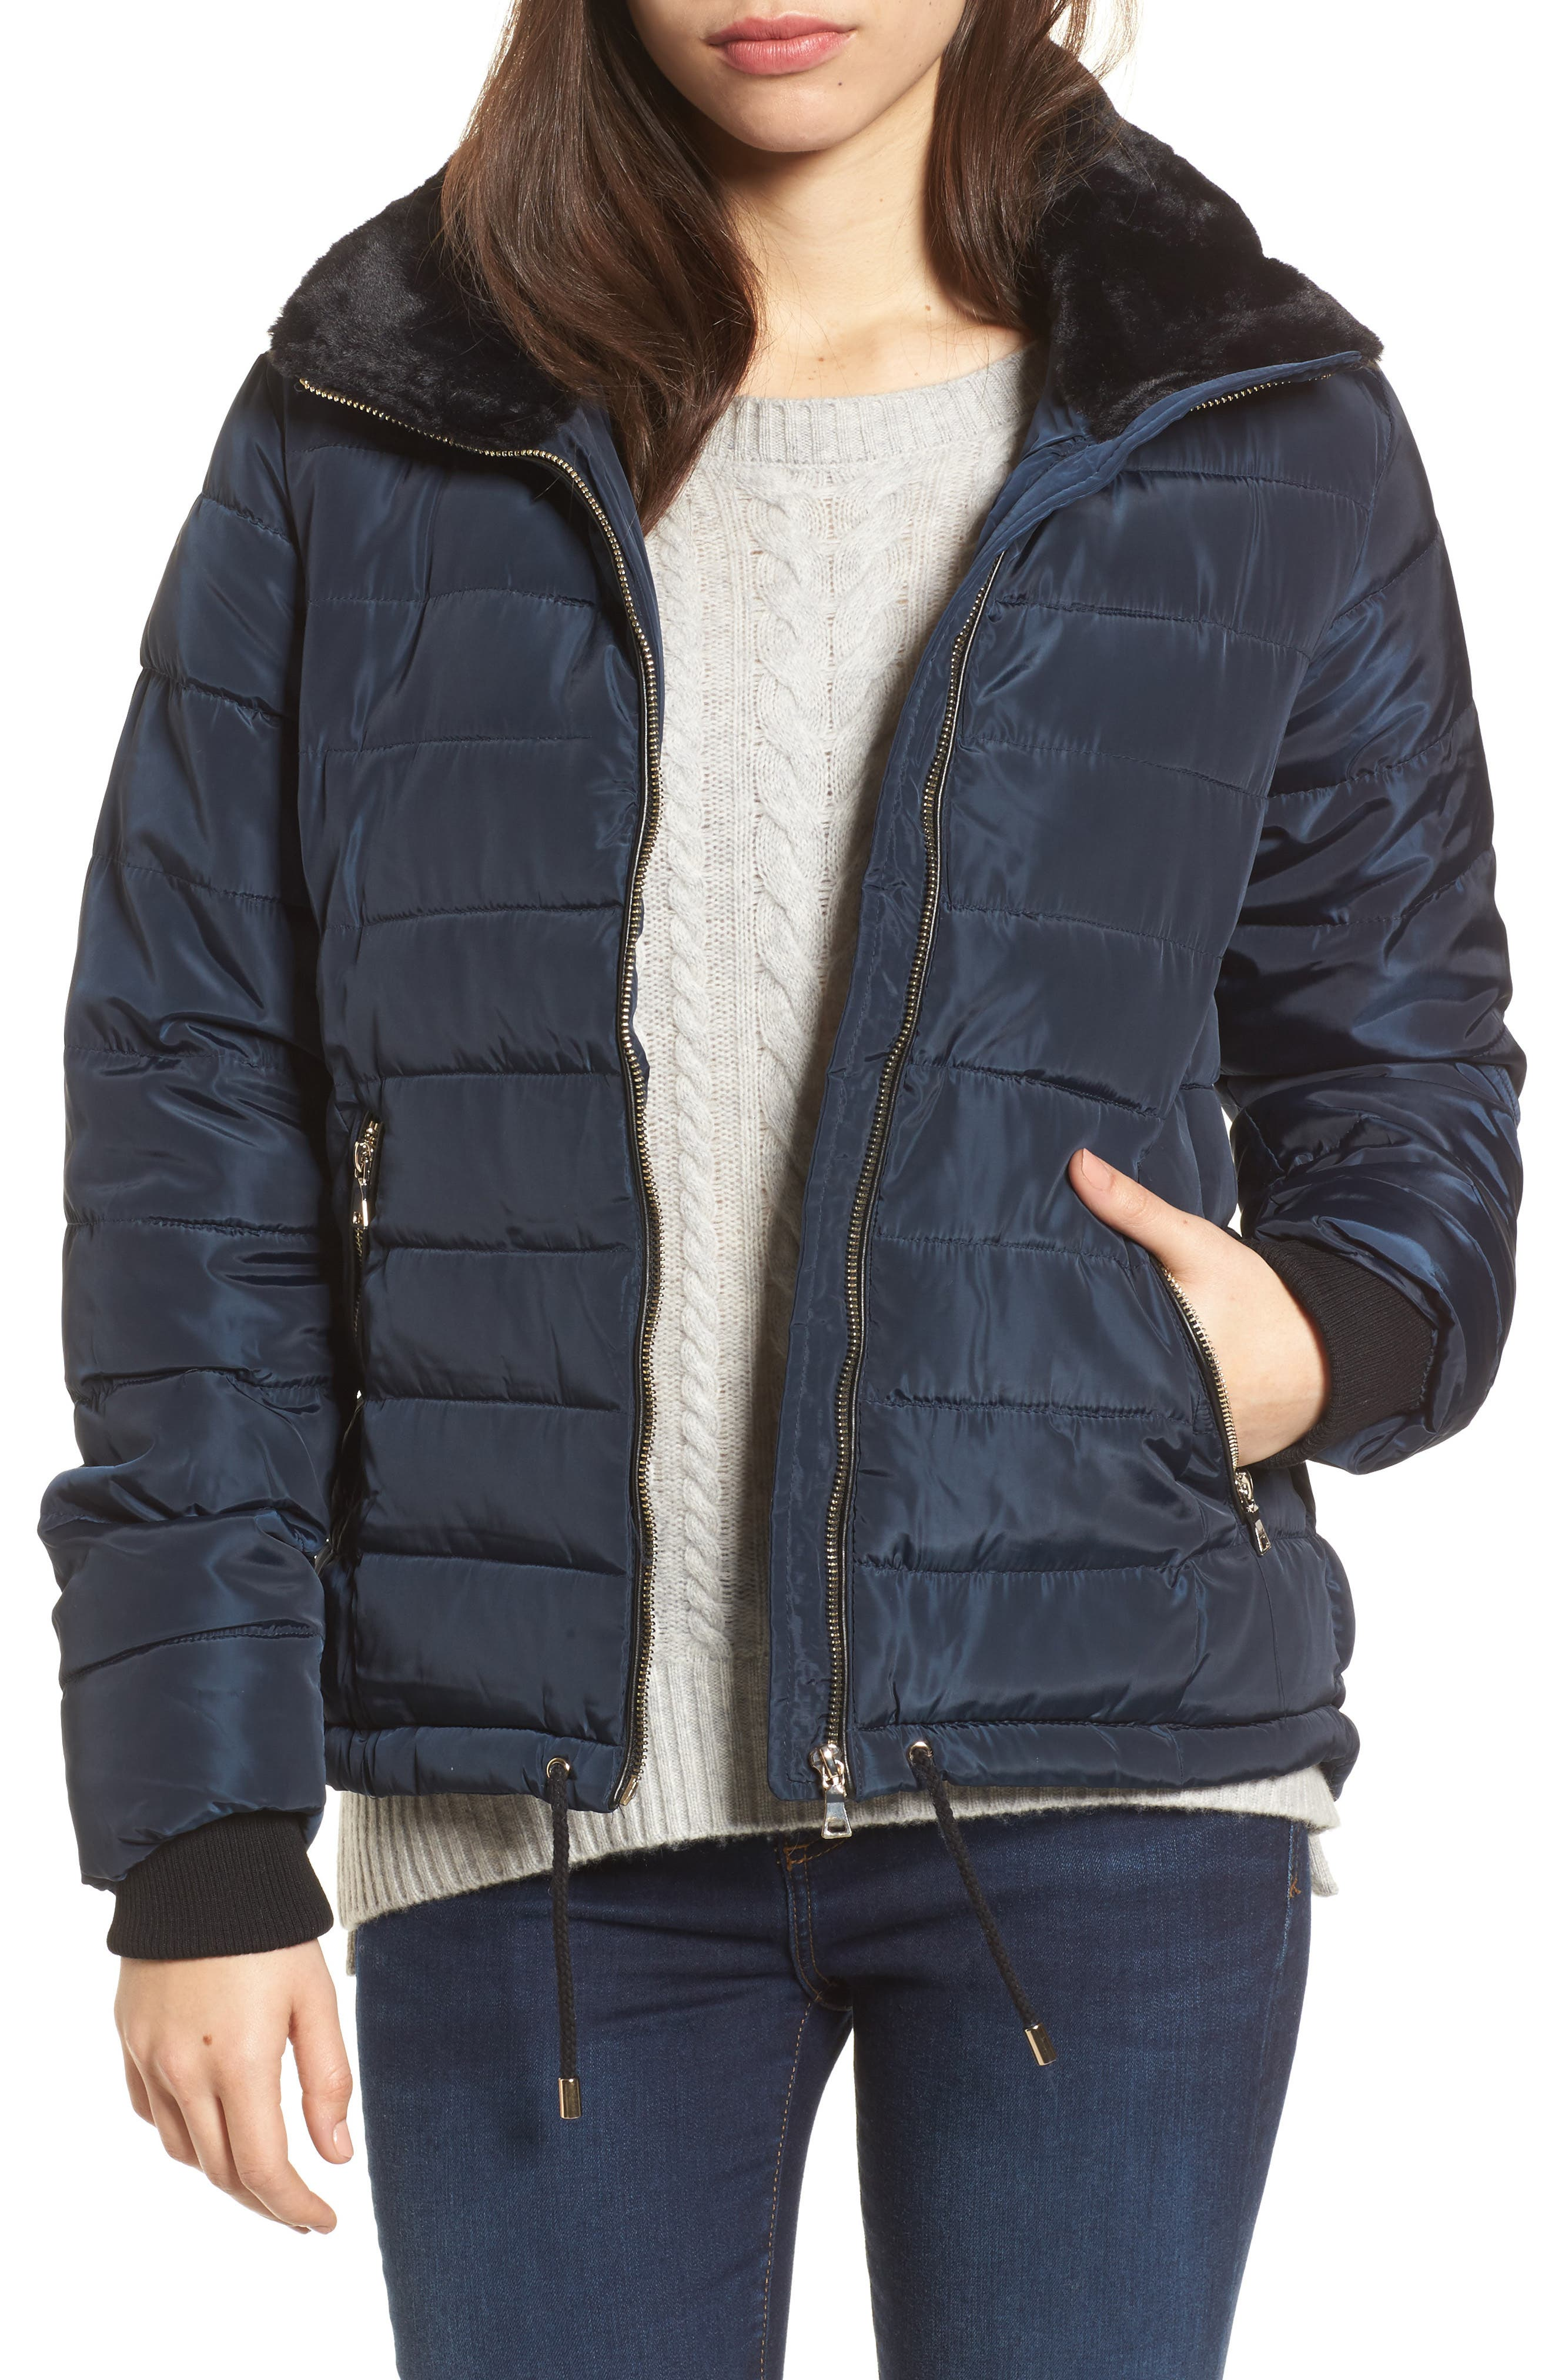 Puffer Jacket with Faux Fur Collar Lining,                             Main thumbnail 1, color,                             400